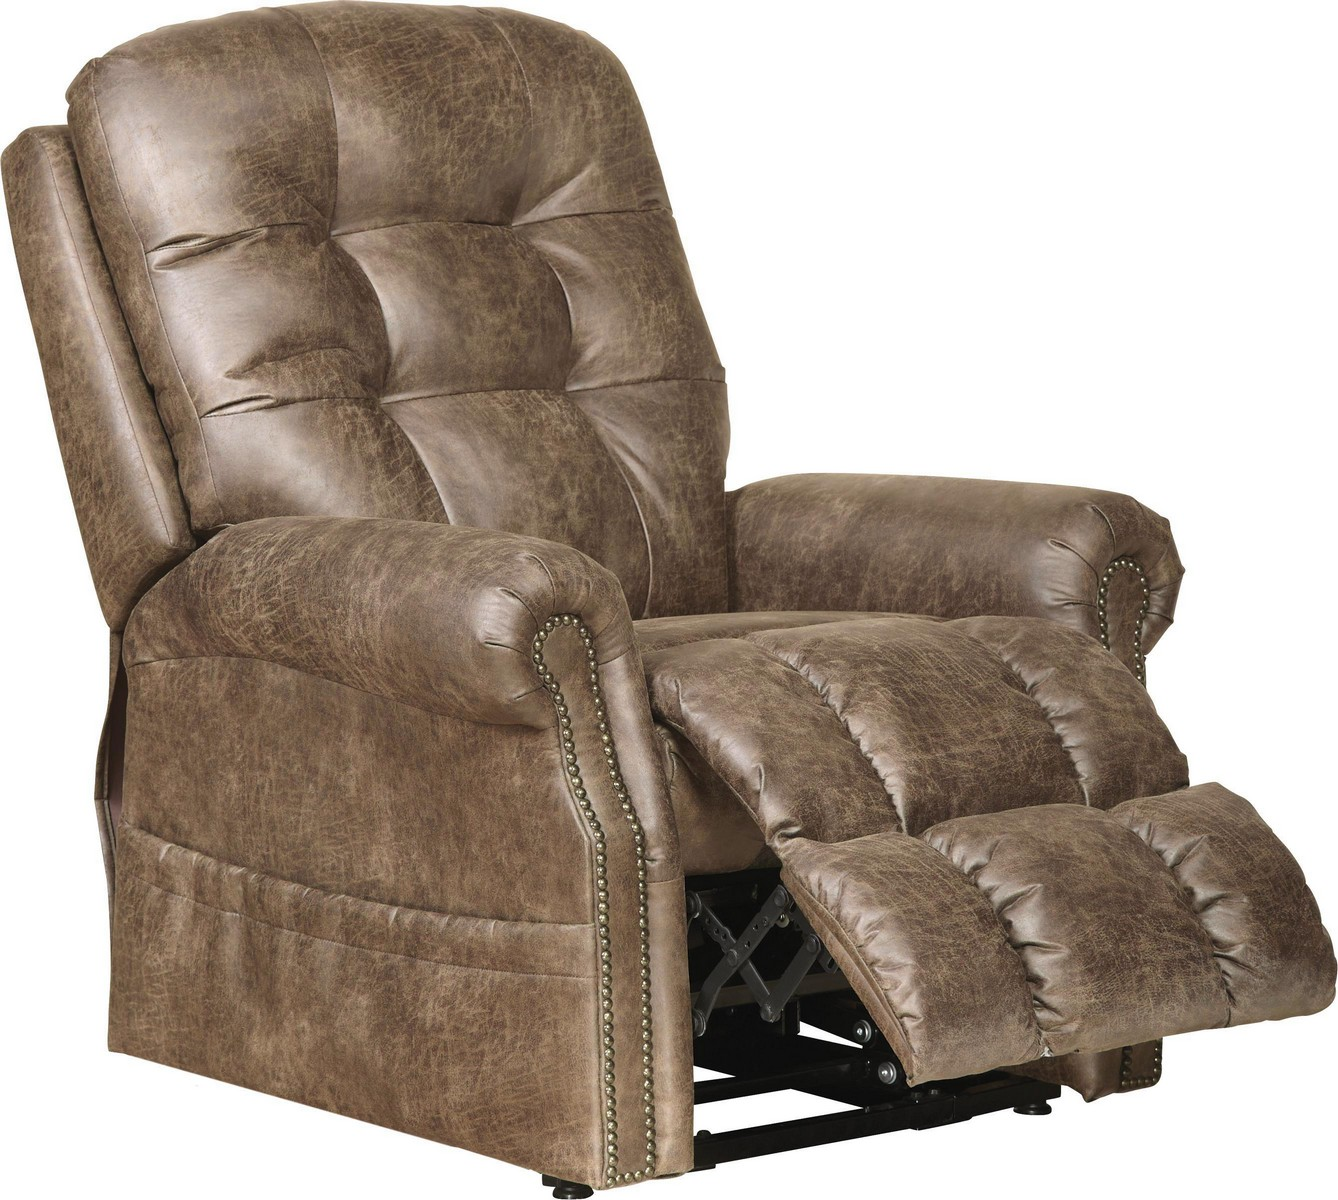 Catnapper Ramsey Power Lift Lay Flat Recliner With Heat